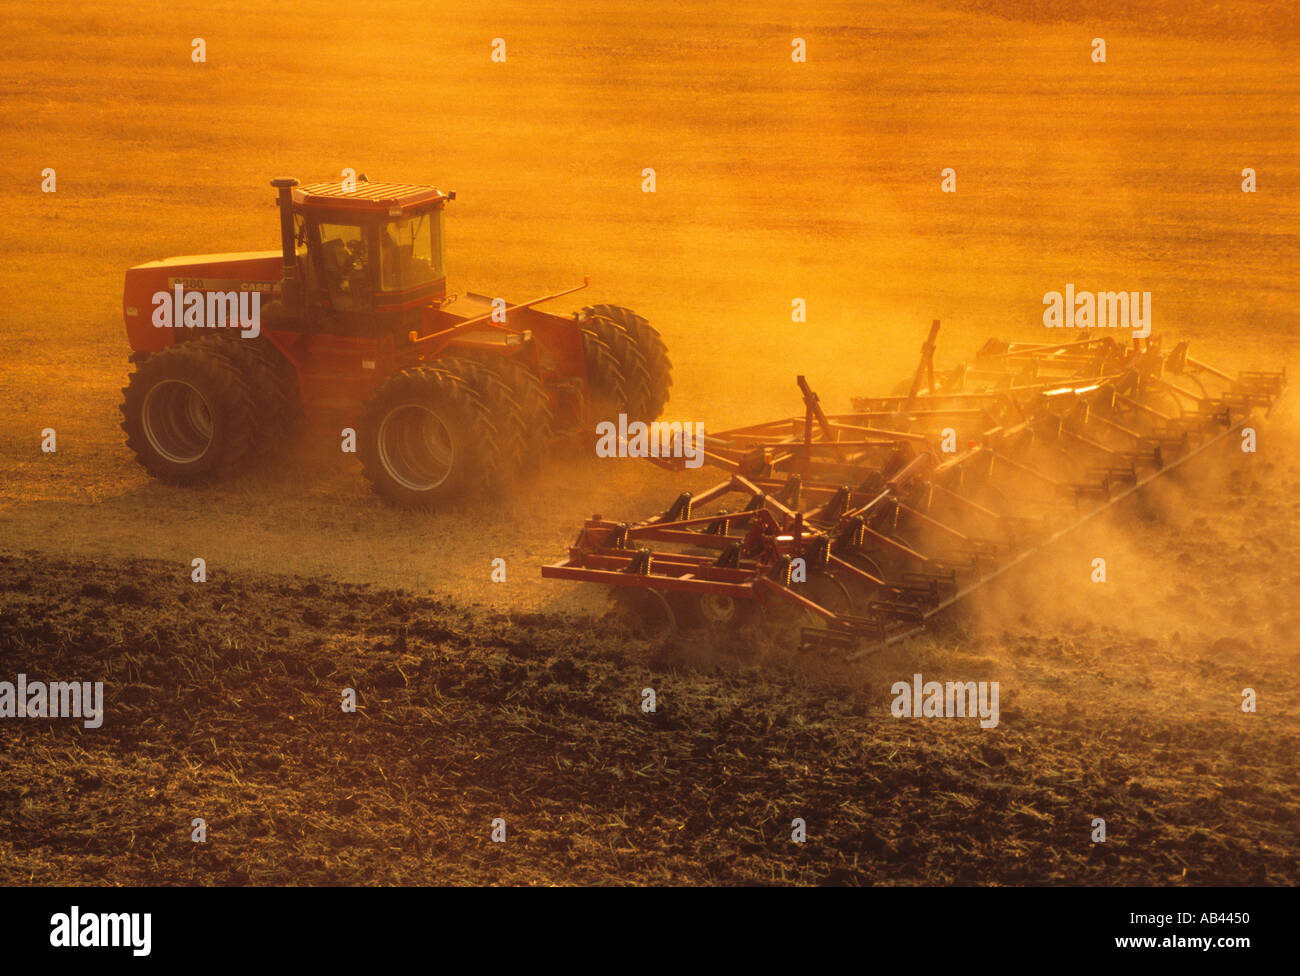 A tractor pulling a springtooth harrow prepares a field of post-harvest wheat stubble for Winter fallow period /Manitoba, Stock Photo